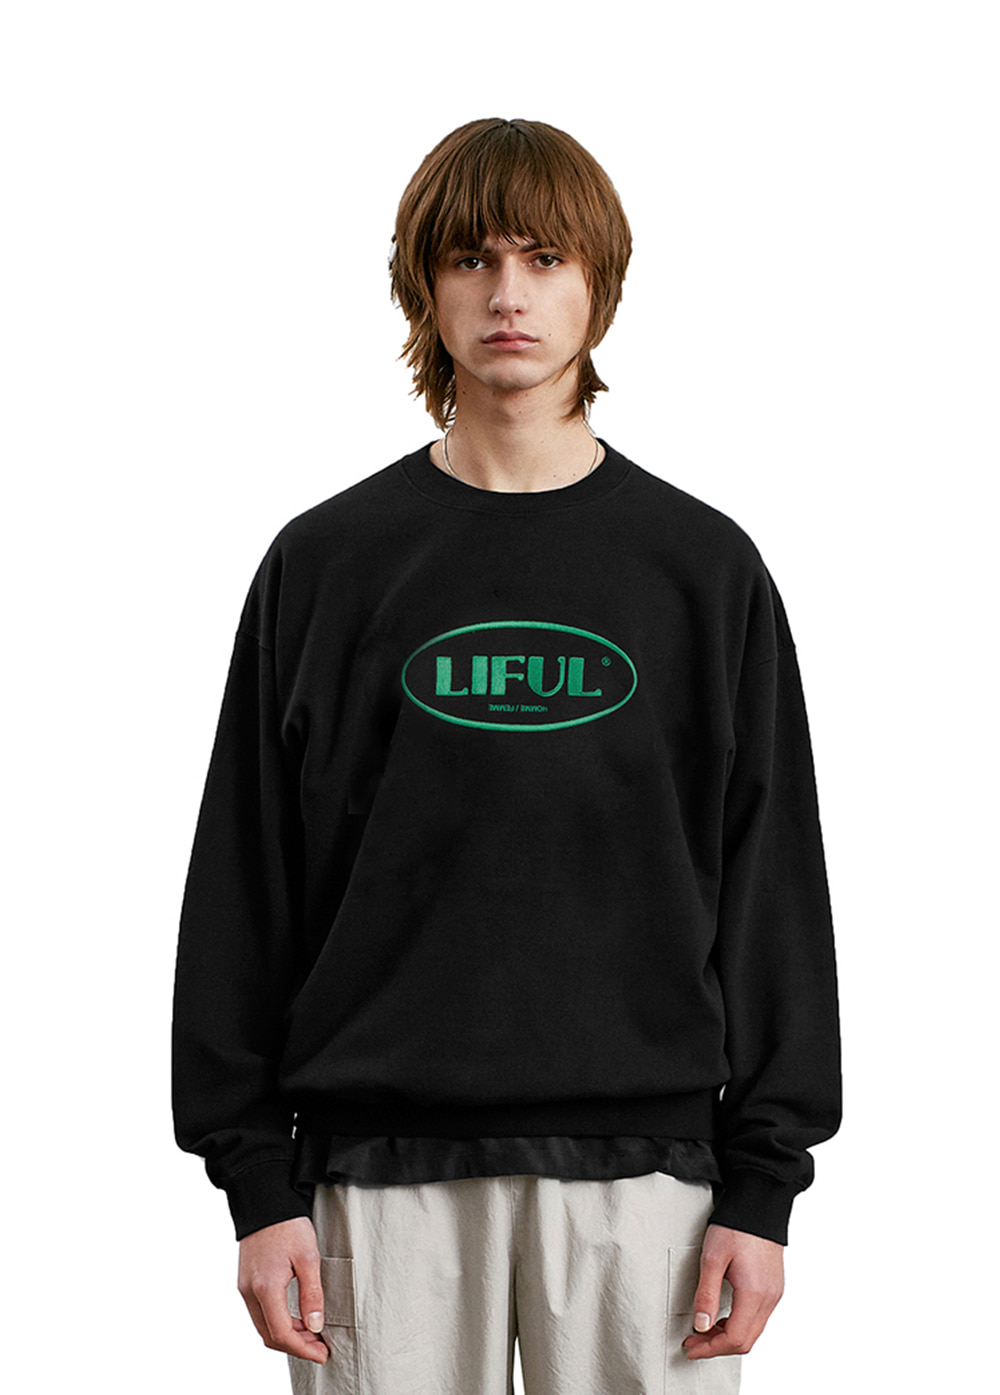 LIFUL OVAL LOGO SWEATSHIRT black